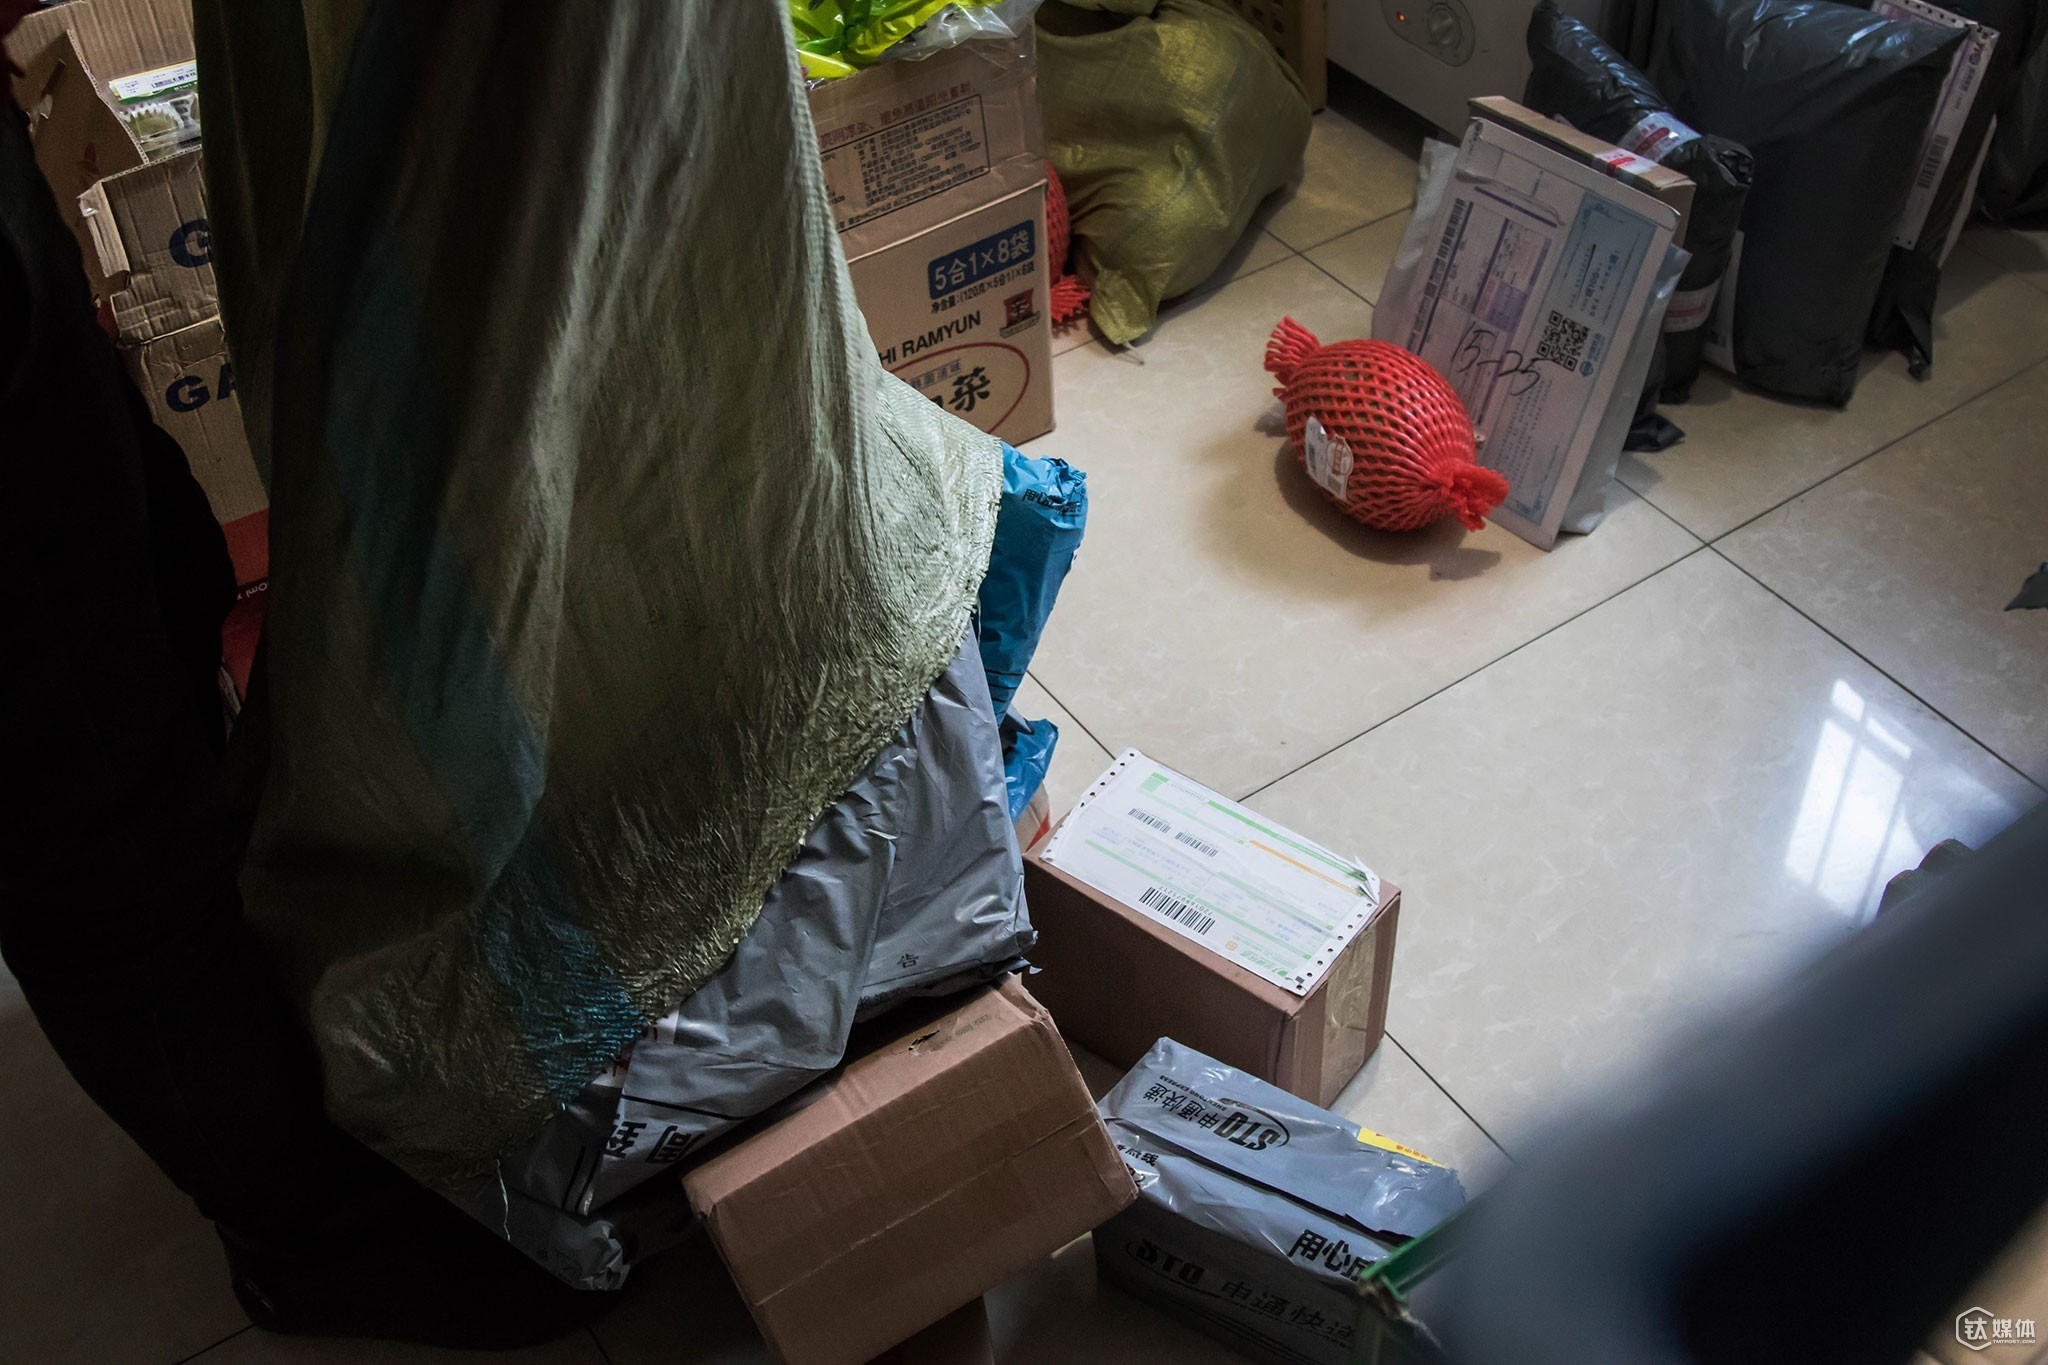 At 12 pm, a deliveryman sent to the convenience store a large bag of parcels.